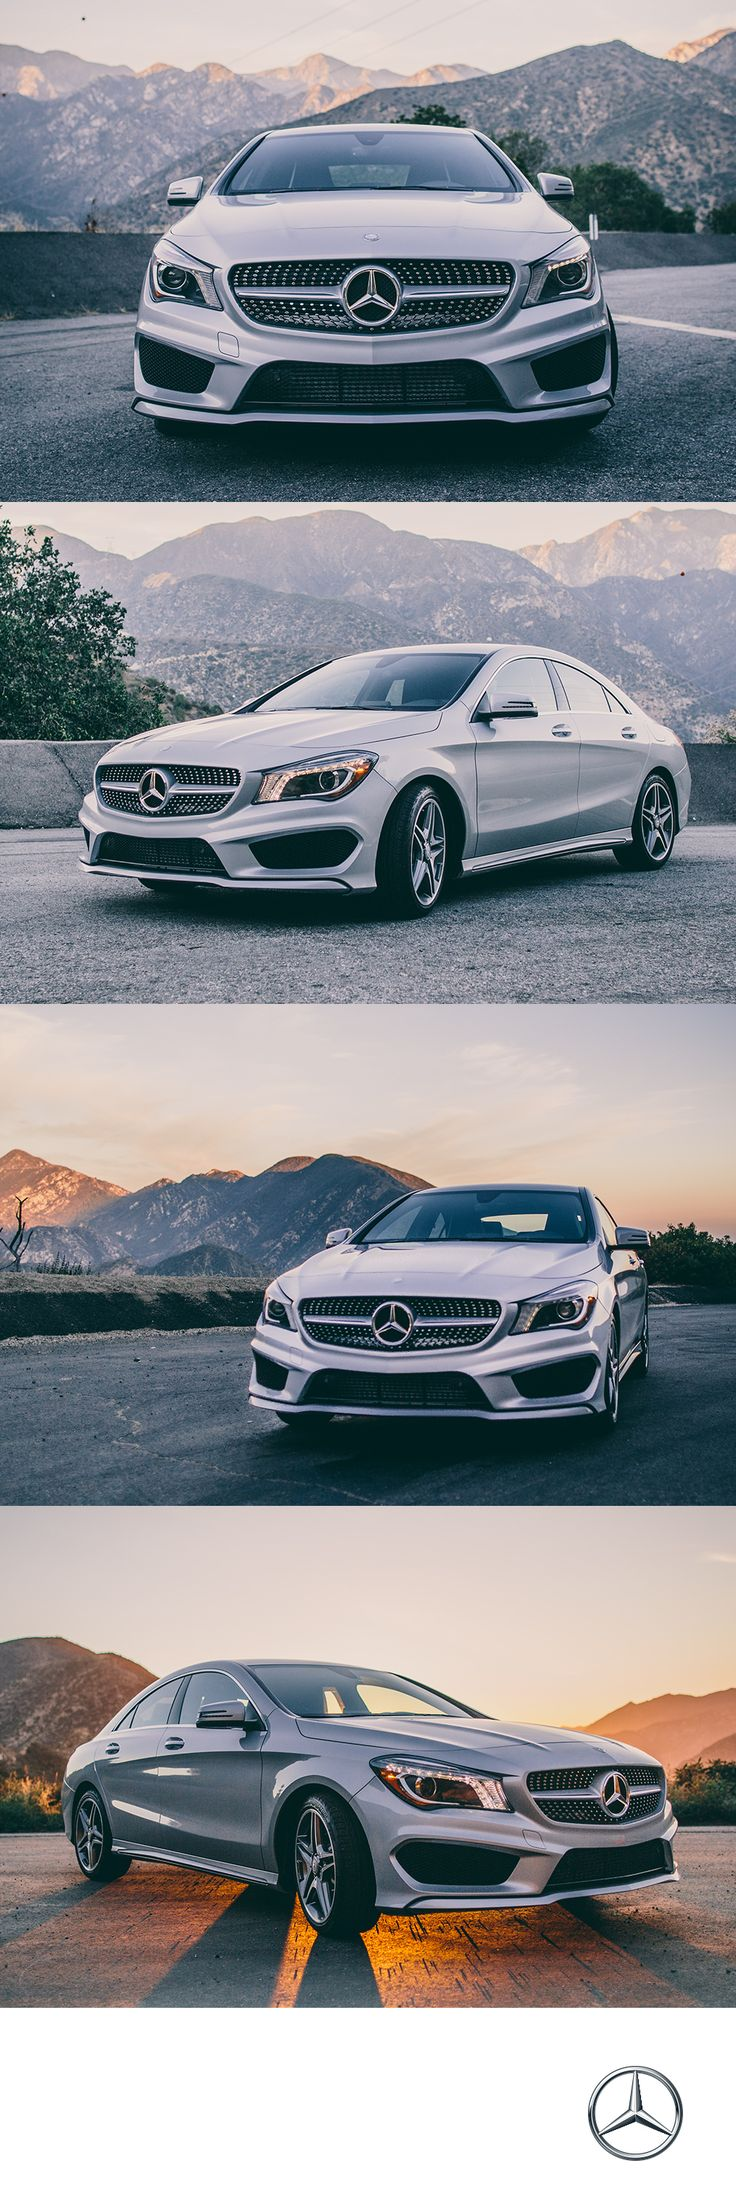 When styling, sophistication, and sport-like speed come standard, you don't just own a CLA250 but every road it drives on. #MBPhotoCredit: Andres Tardio